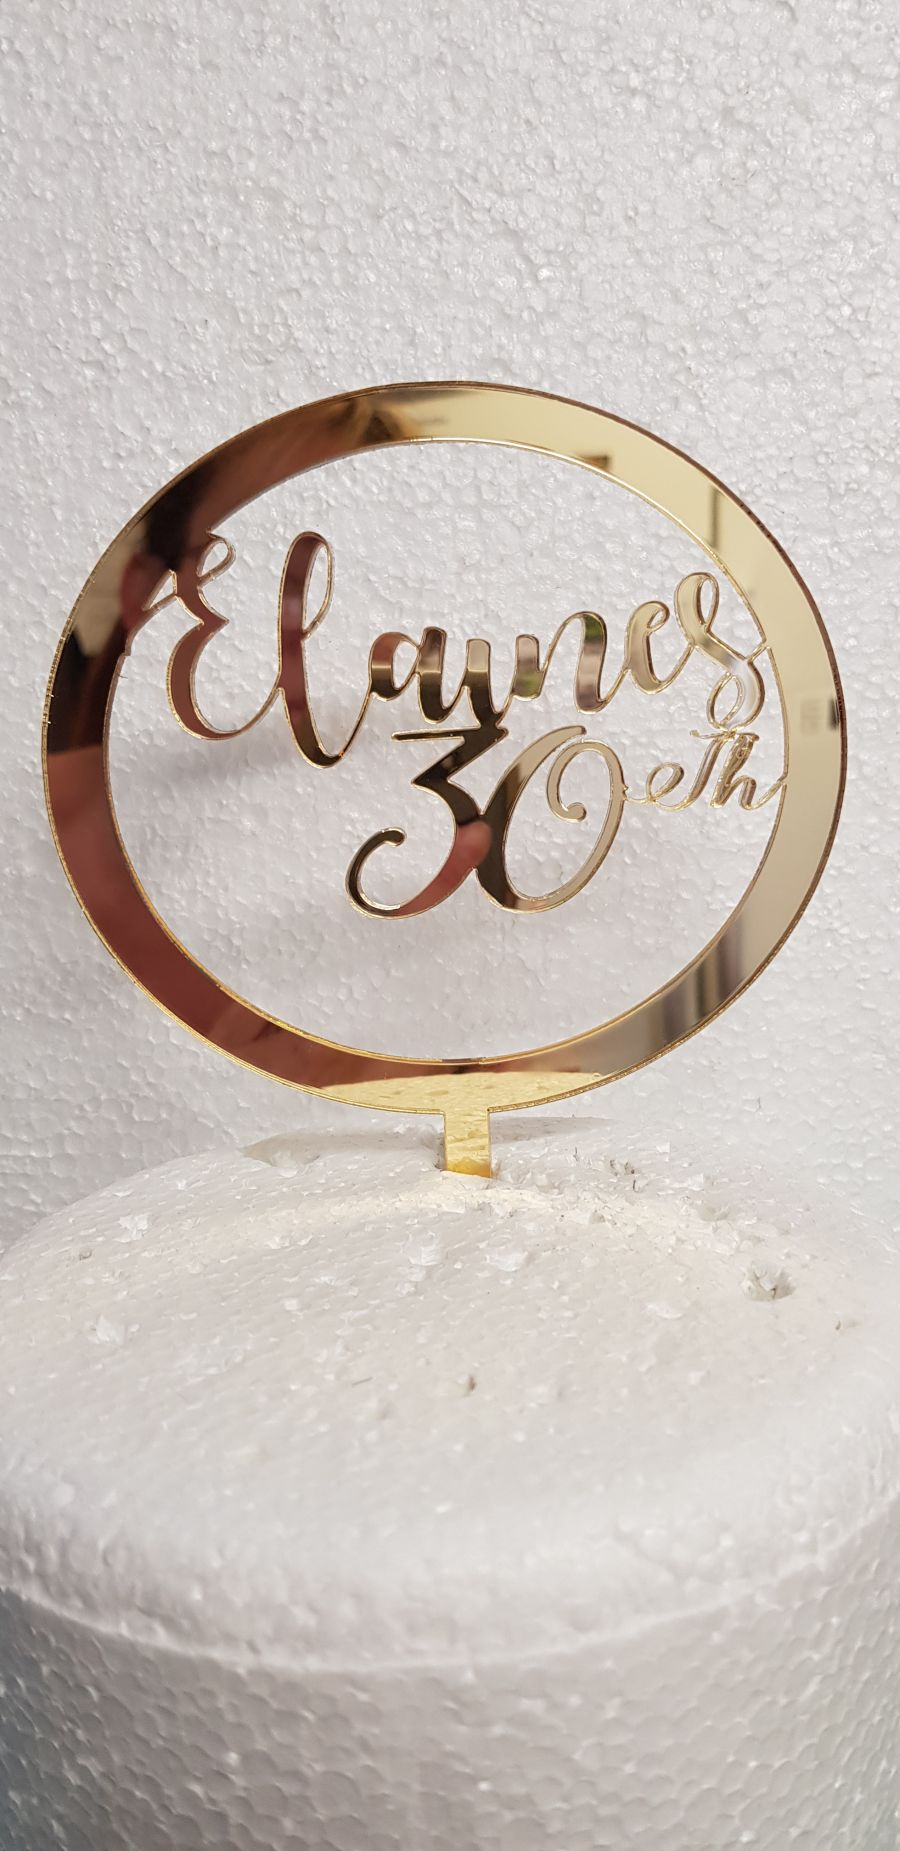 Cercle with name and age inside acrylic cake topper